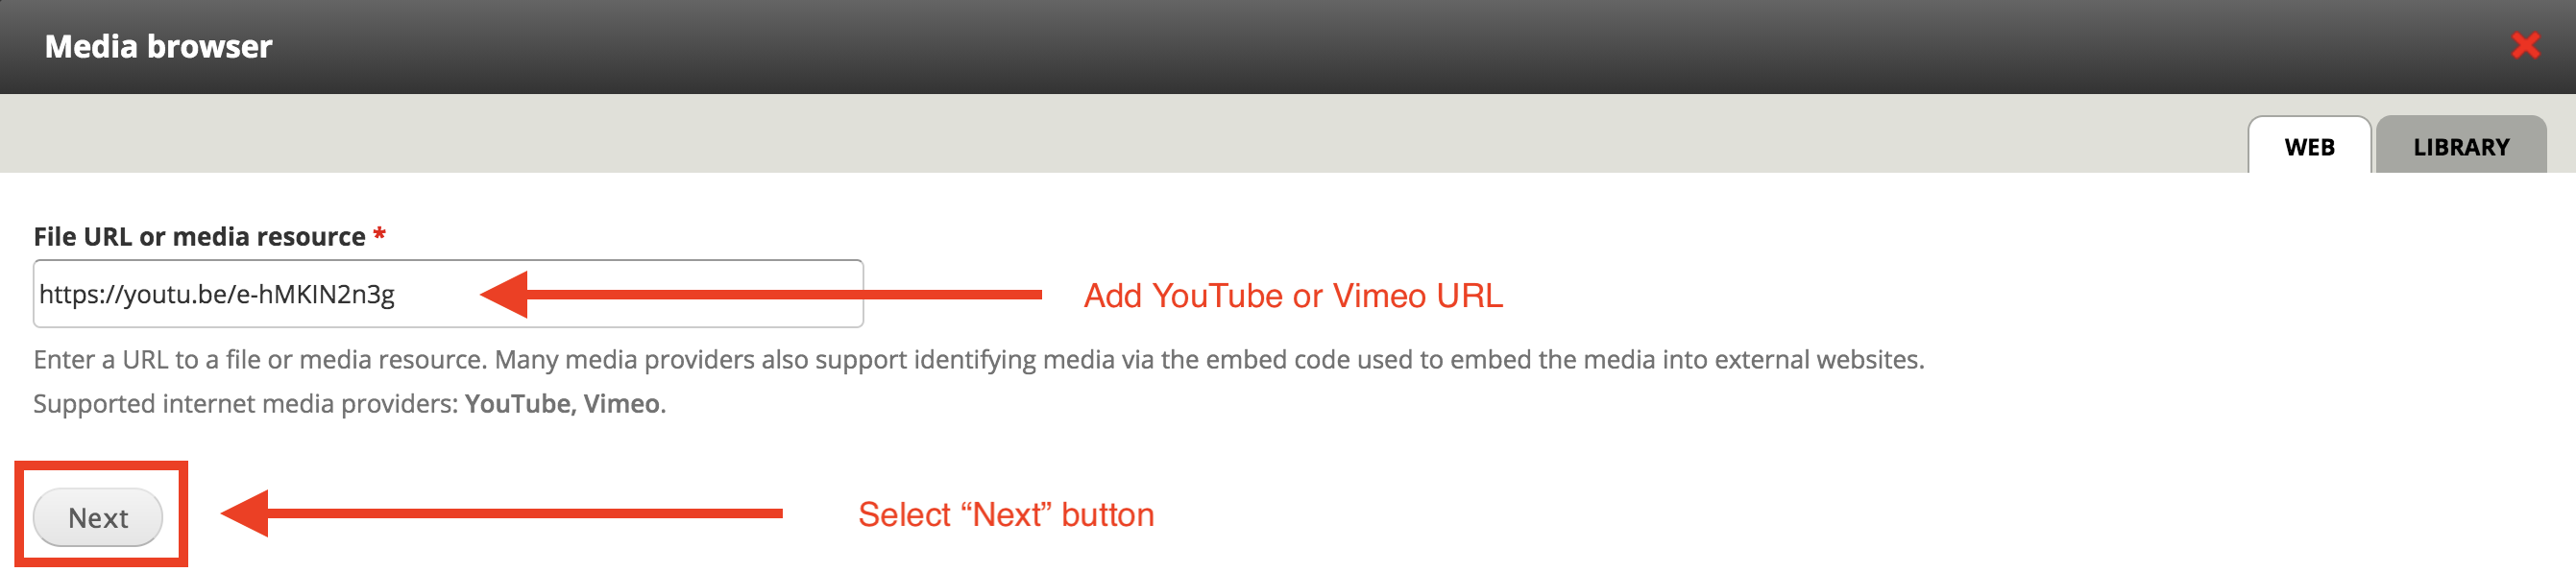 """Screenshot of media browser modal, with YouTube URL in the """"file URL or media resource"""" field"""